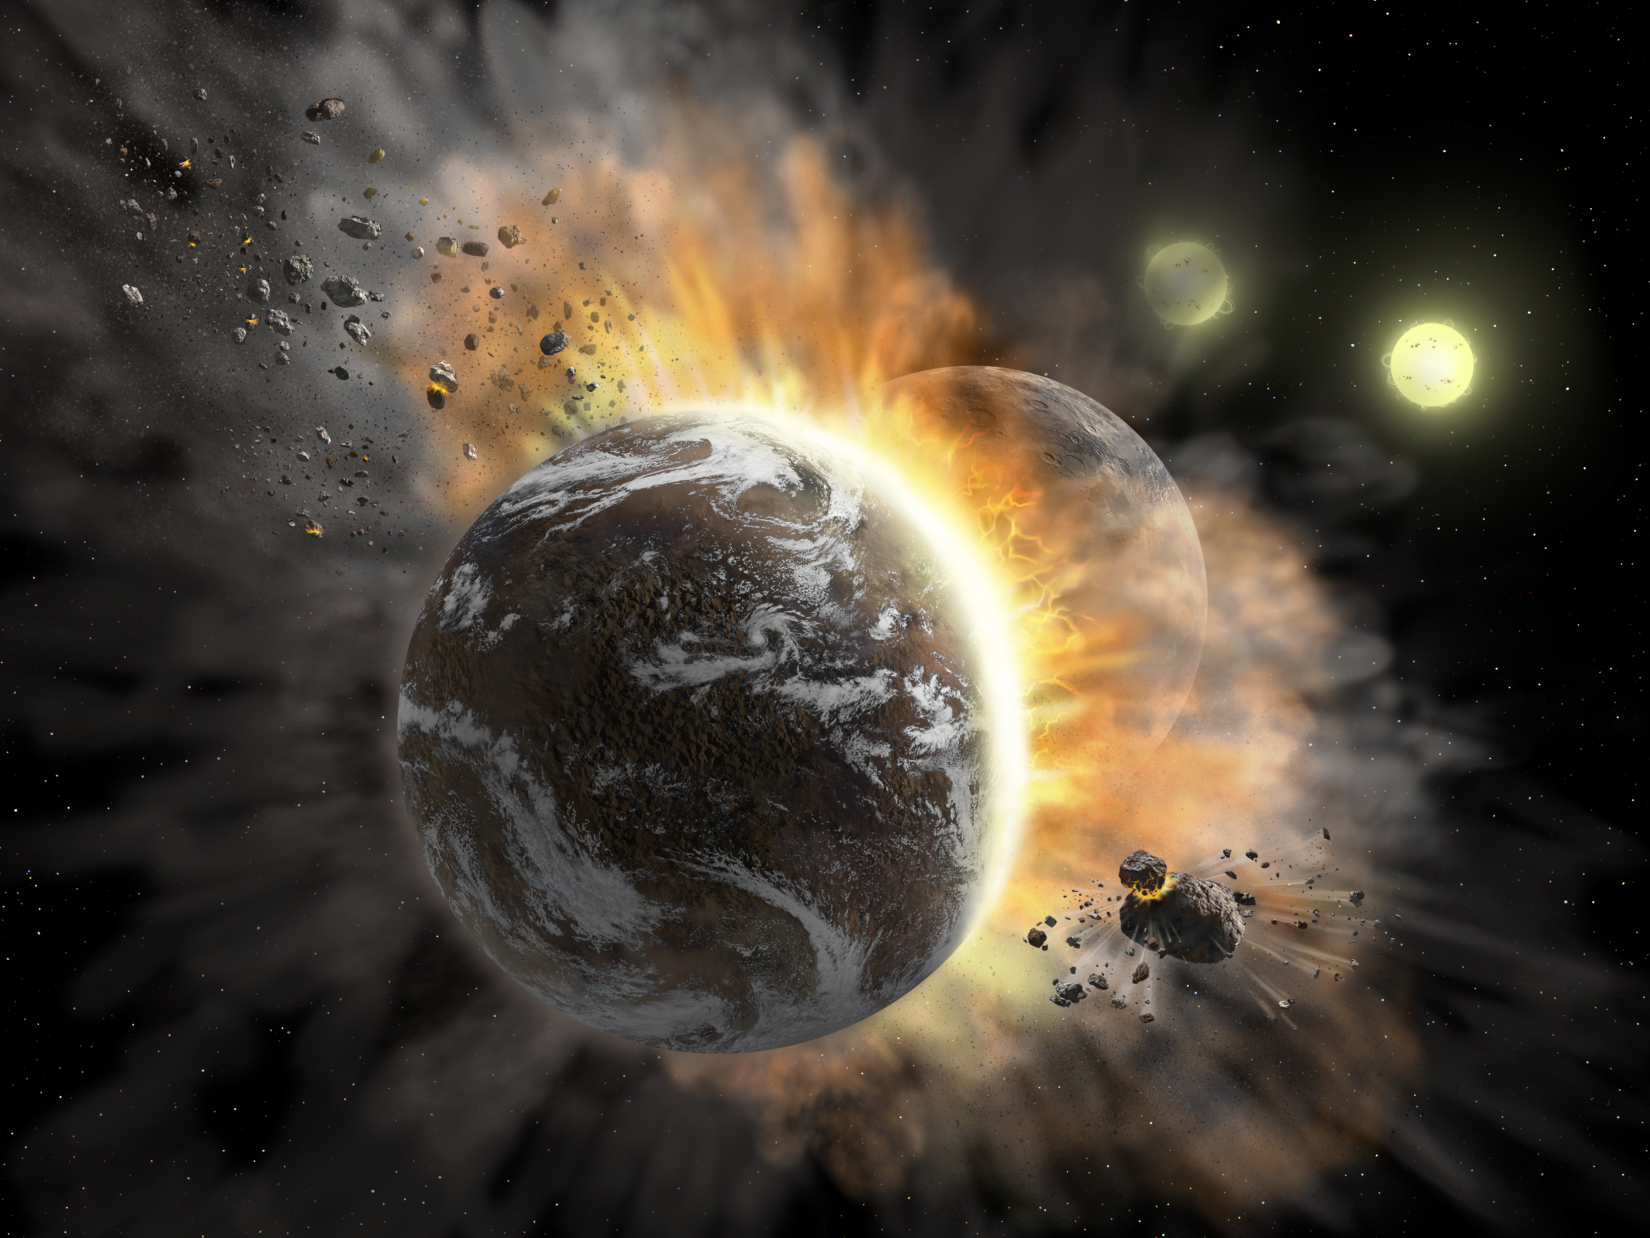 Artist's concept illustrating a catastrophic collision between two rocky exoplanets